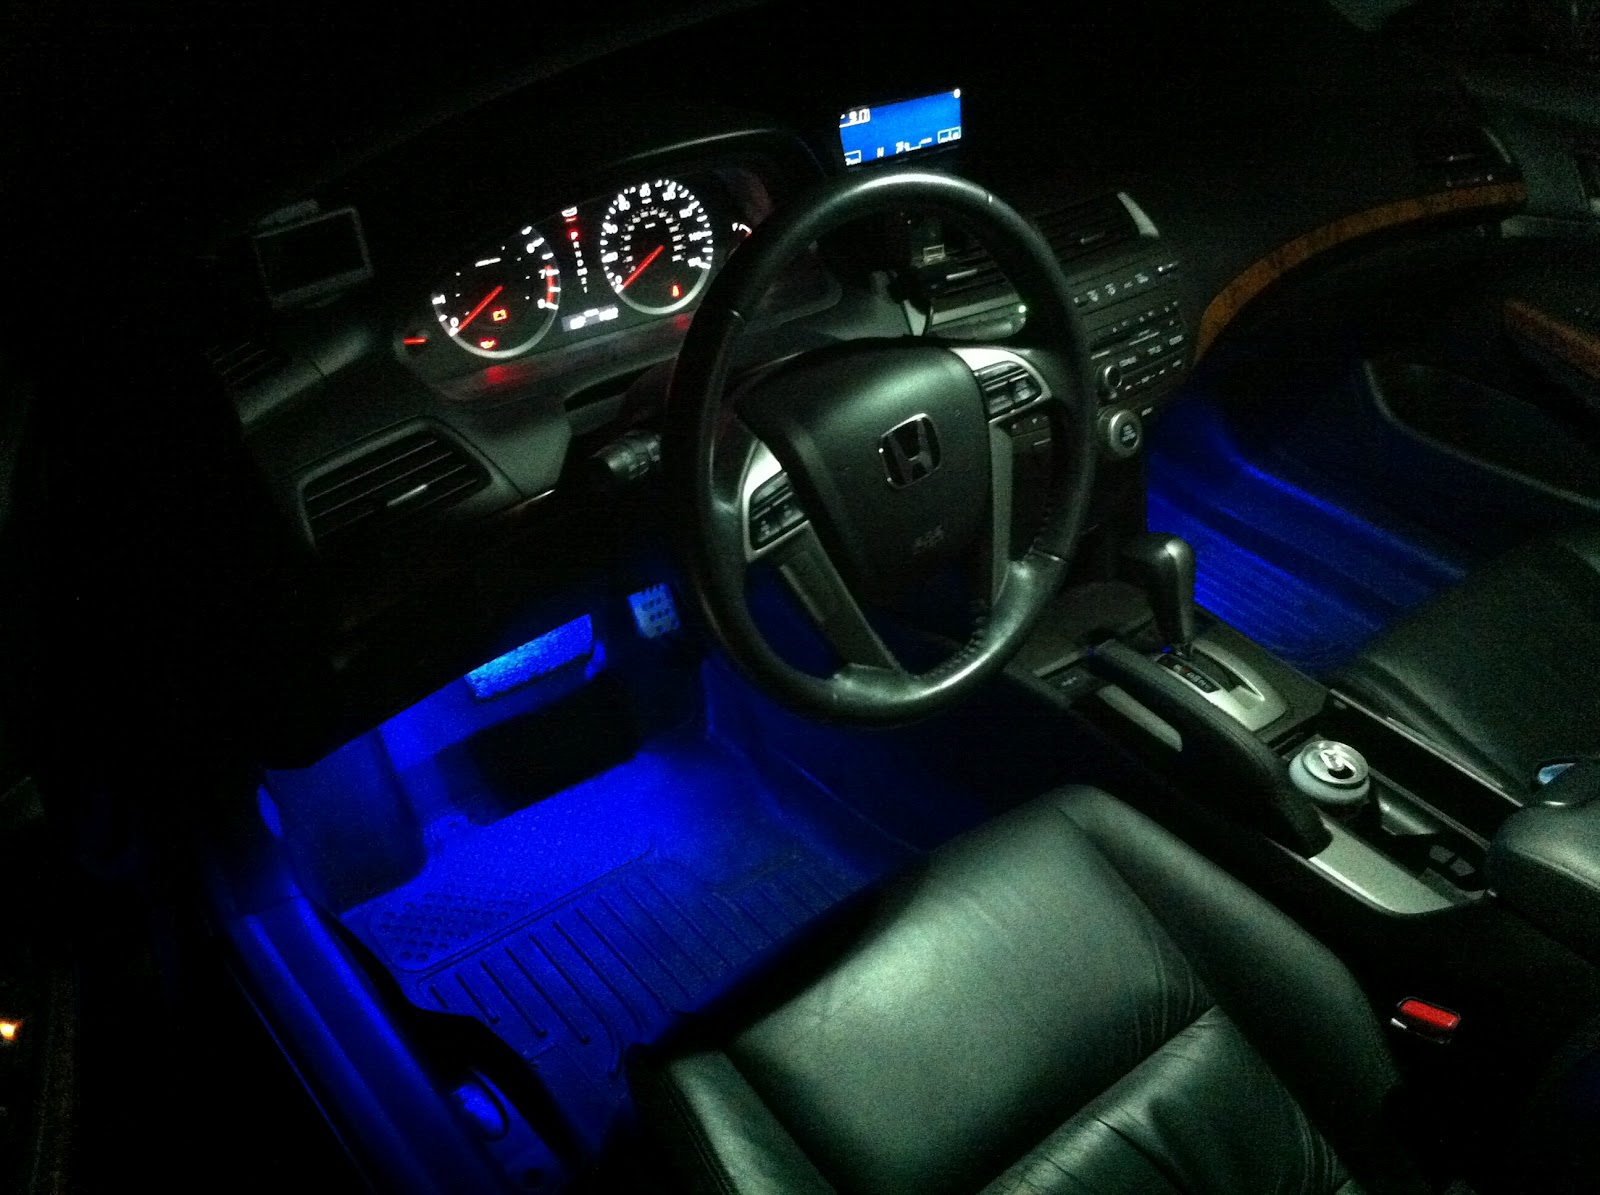 2011 accord inspire build blue led car interior lighting kit 4pc lu sc01 for 2014 honda accord interior lights